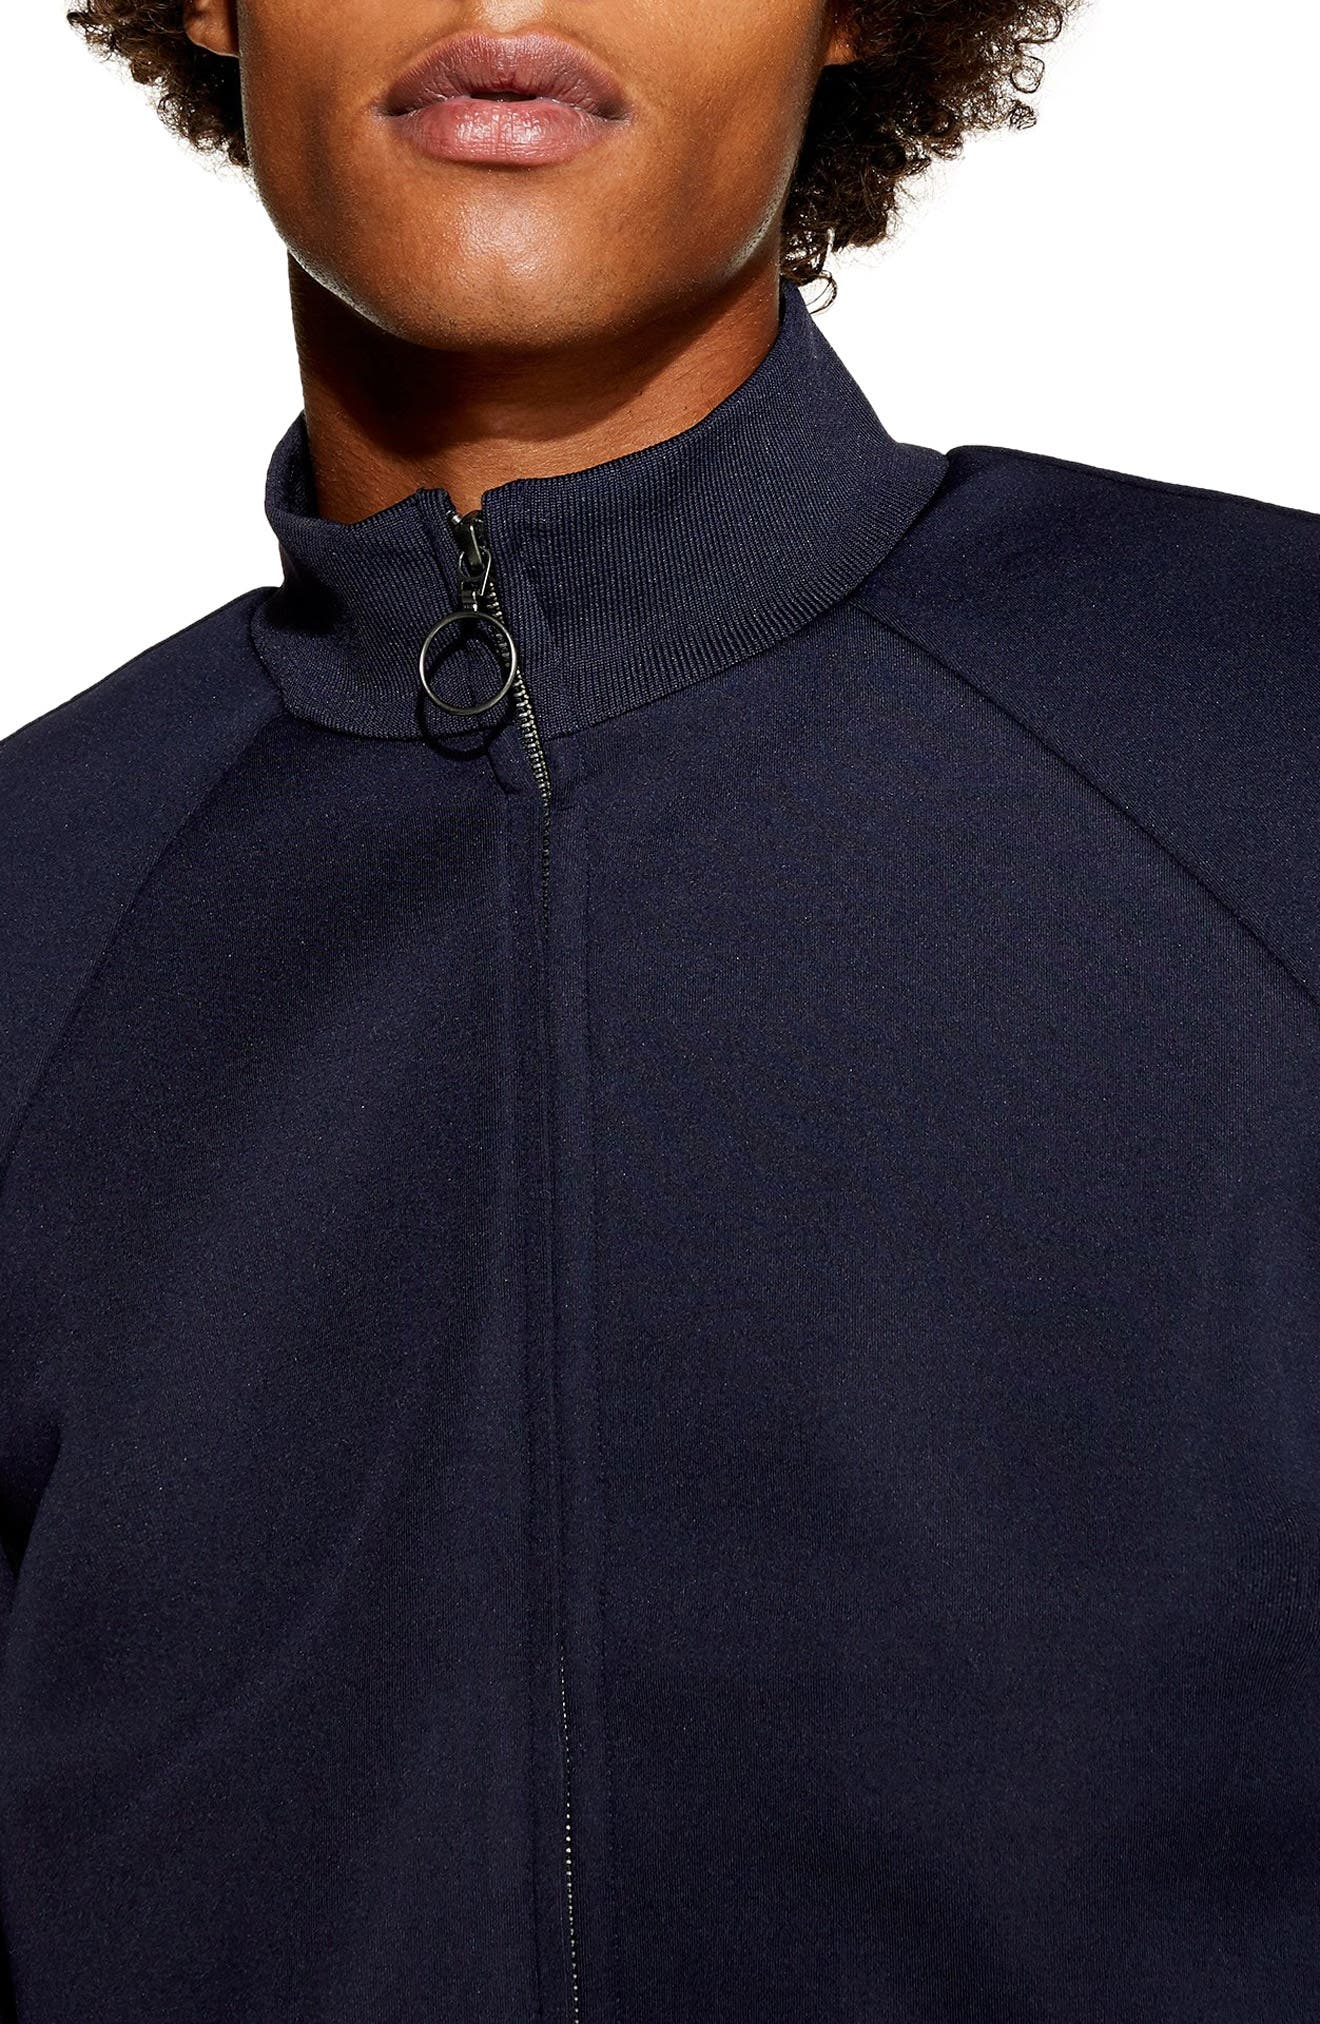 Domino Revere Zip Jacket,                             Alternate thumbnail 2, color,                             NAVY BLUE